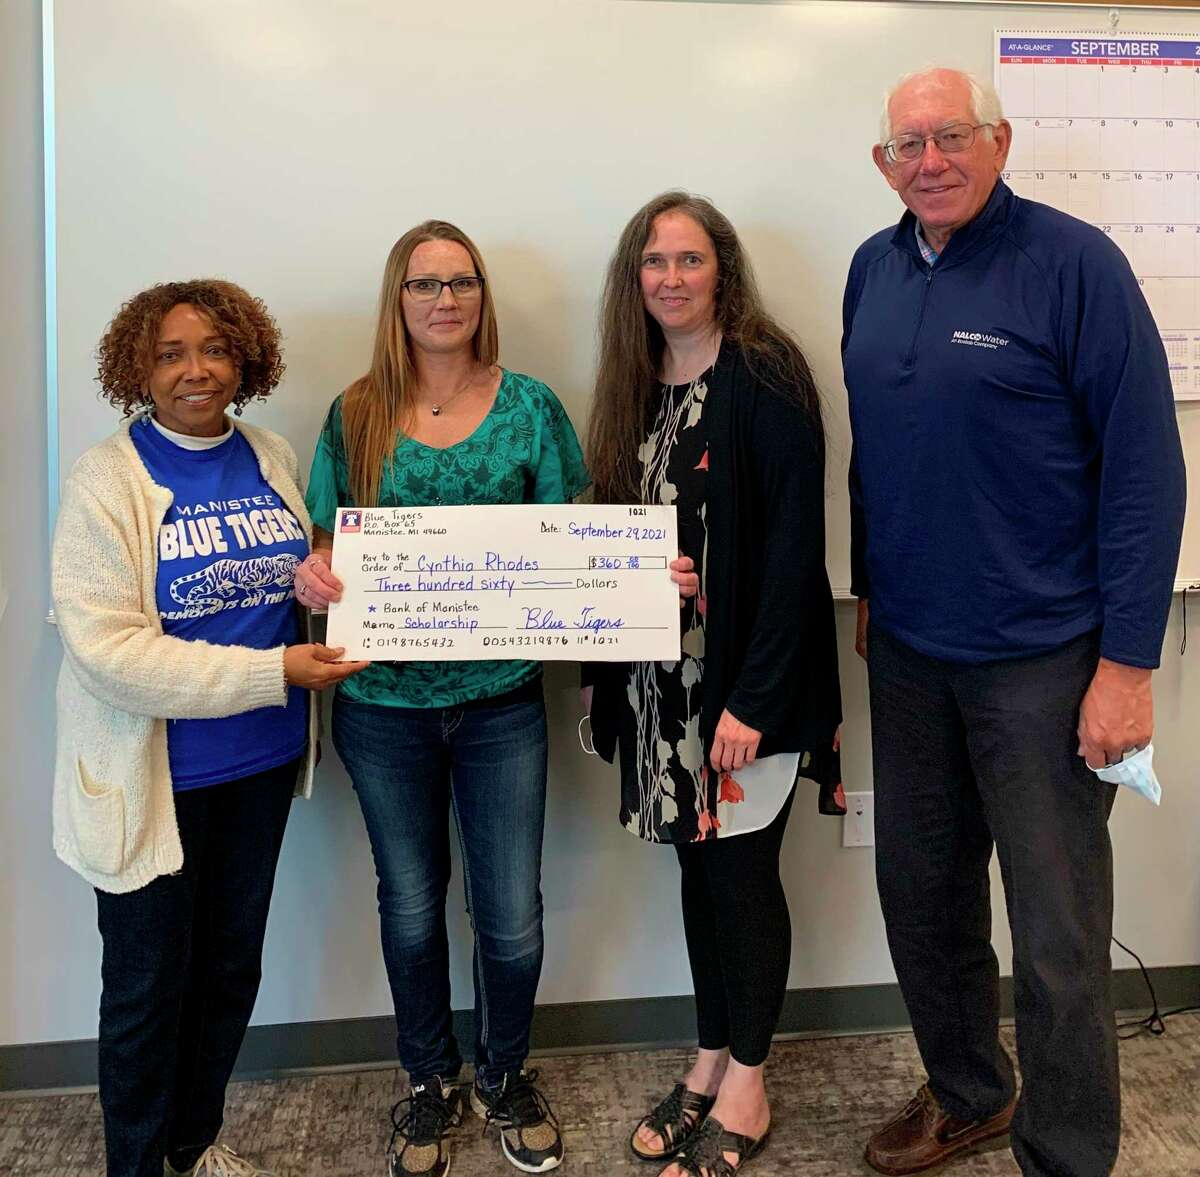 Pictured (from left) are Shirley Madden, Blue Tigers chairperson; Cynthia Rhodes;Maryann Allen, of Northwest Michigan Works!; and John Helge, Manistee County Democrats chairperson. Rhodes received a scholarship from the Blue Tigers to assist her with transportation to the Manistee Northwest Michigan Works! site at 400 River St. in Manistee, where she is working to complete her GED. (Courtesy photo)